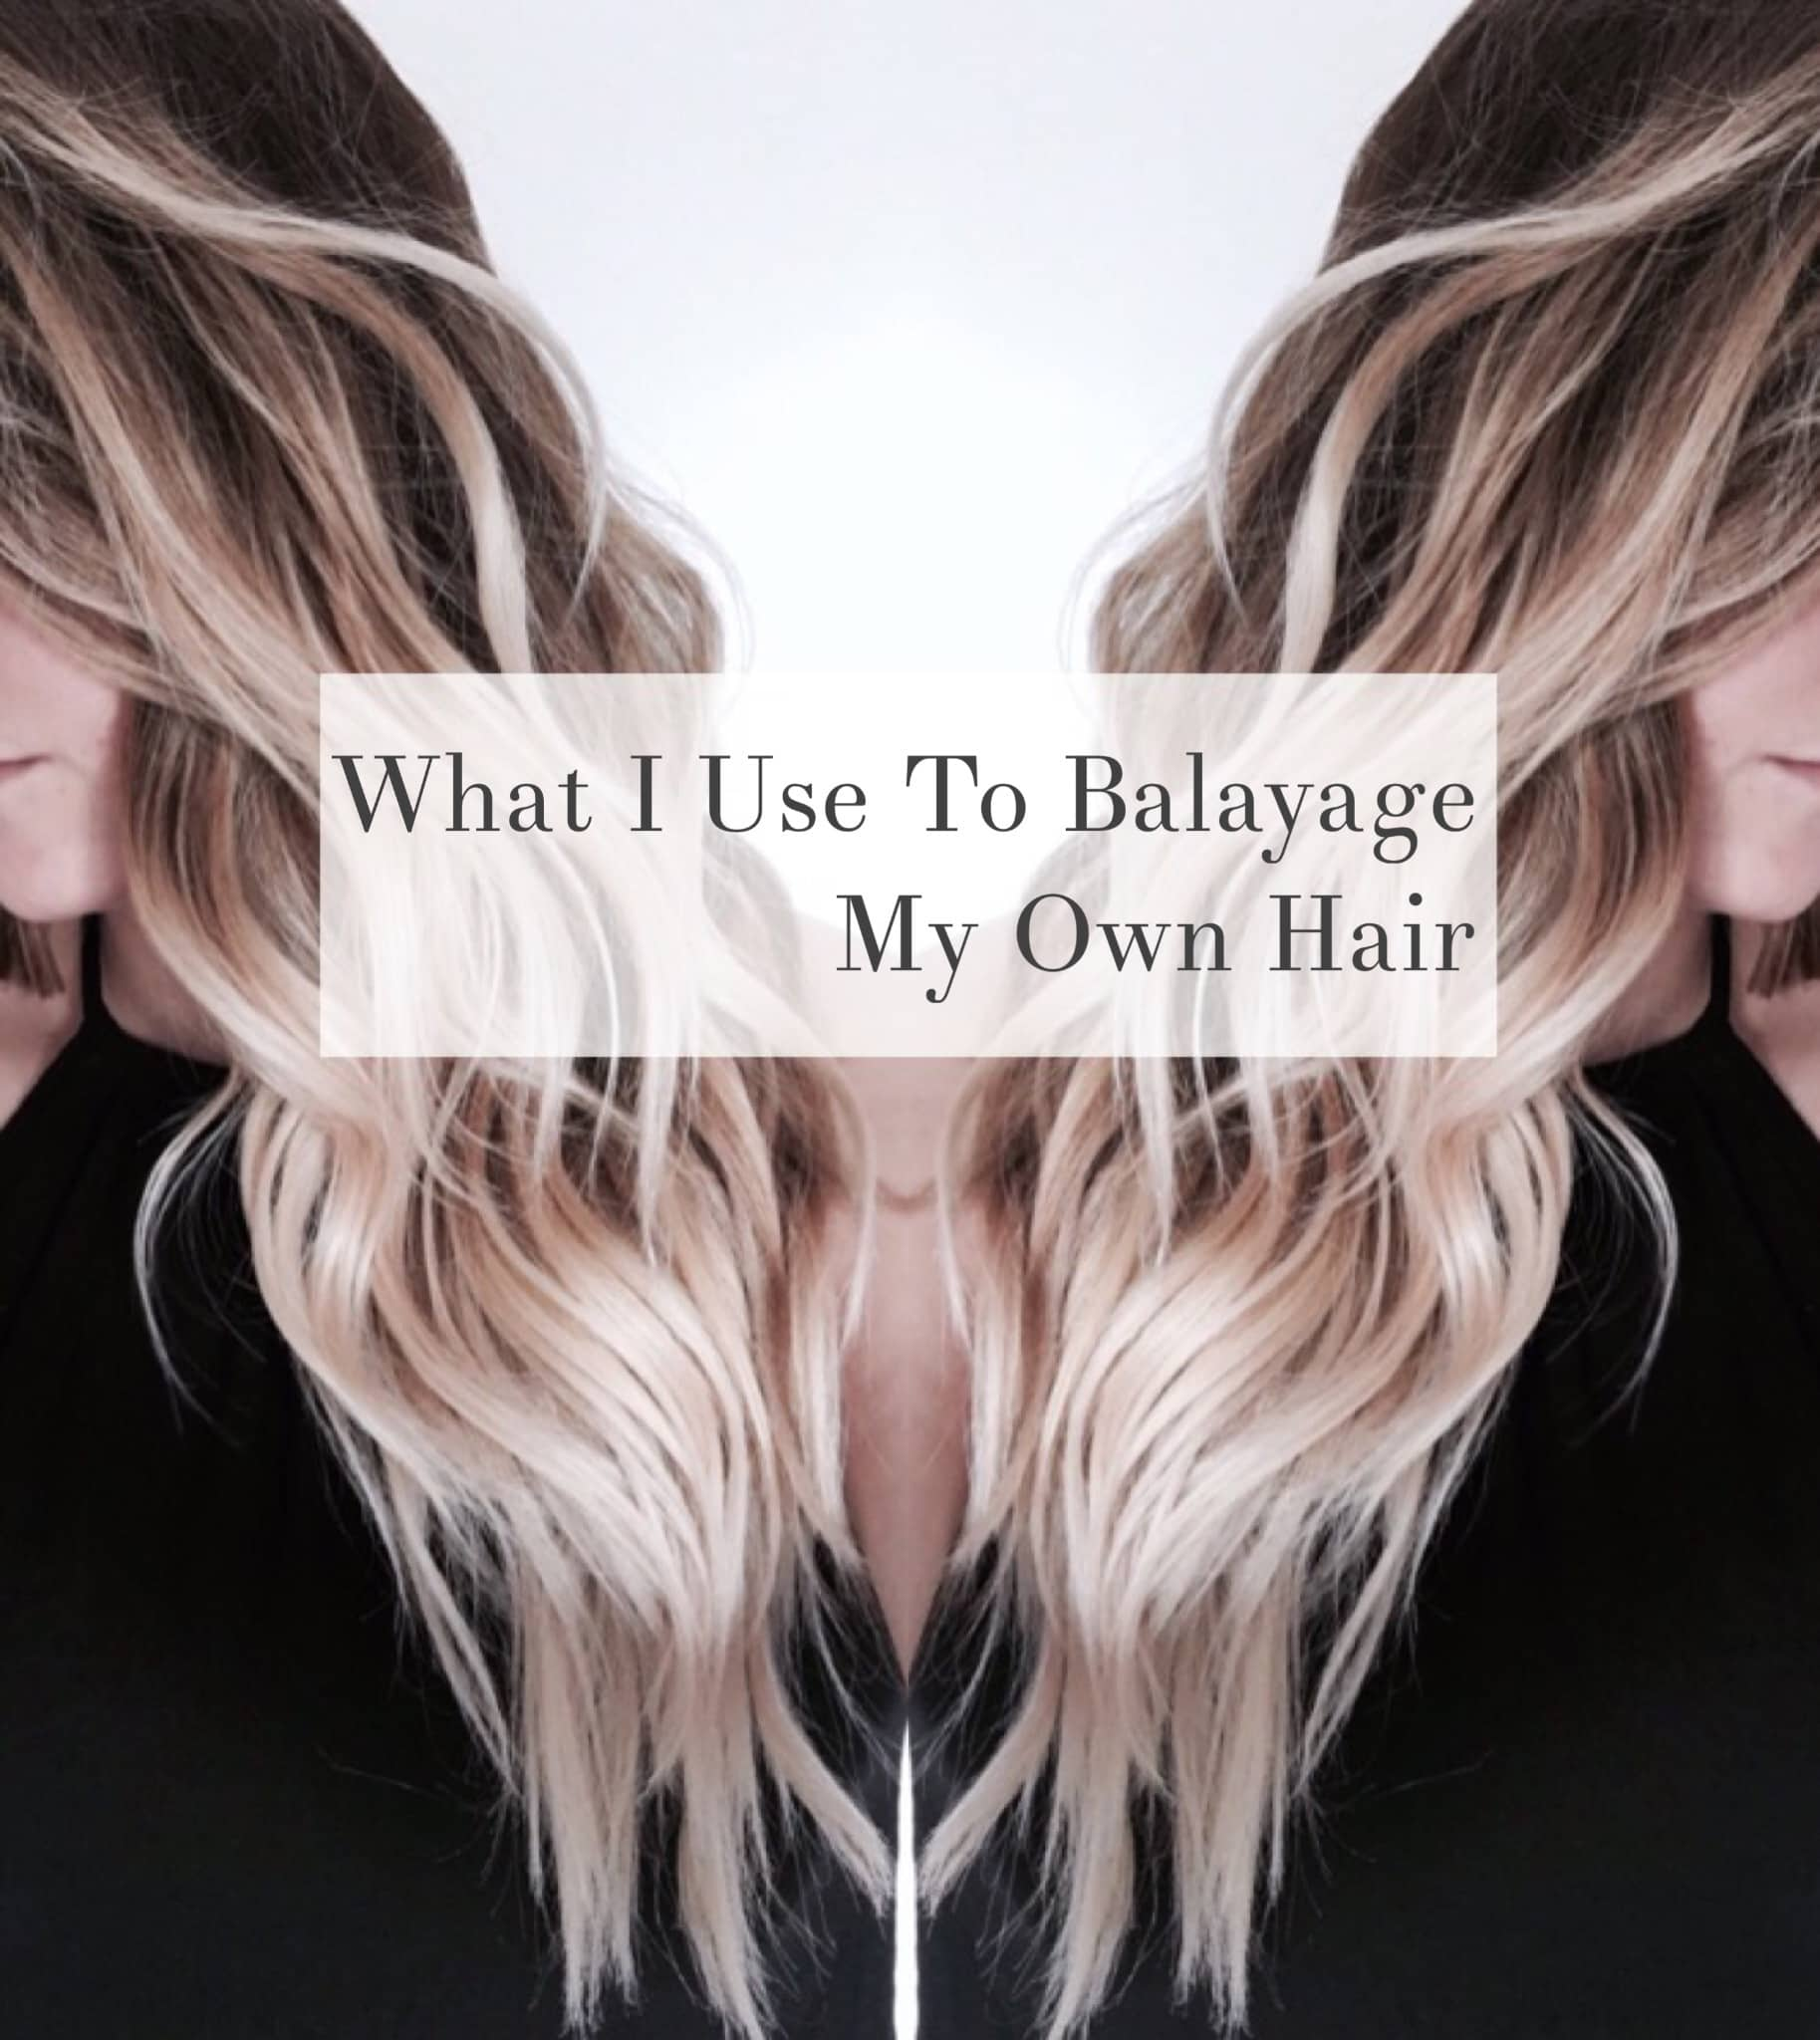 What I Use To Balayage My Own Hair Cassie Scroggins